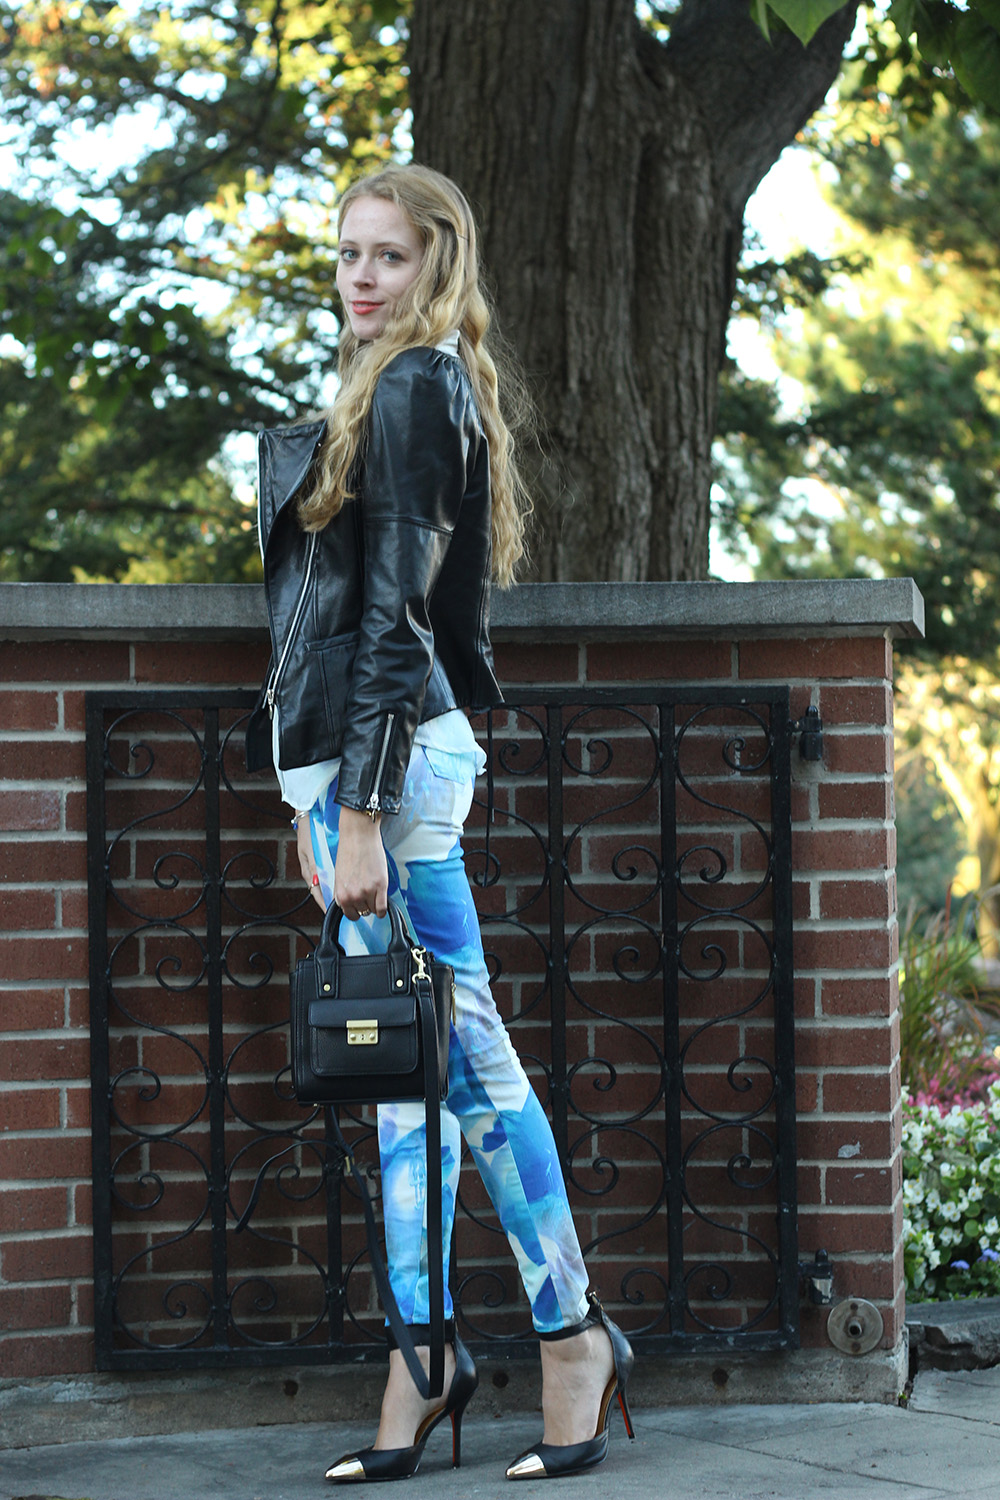 leather jacket and jbrand jeans